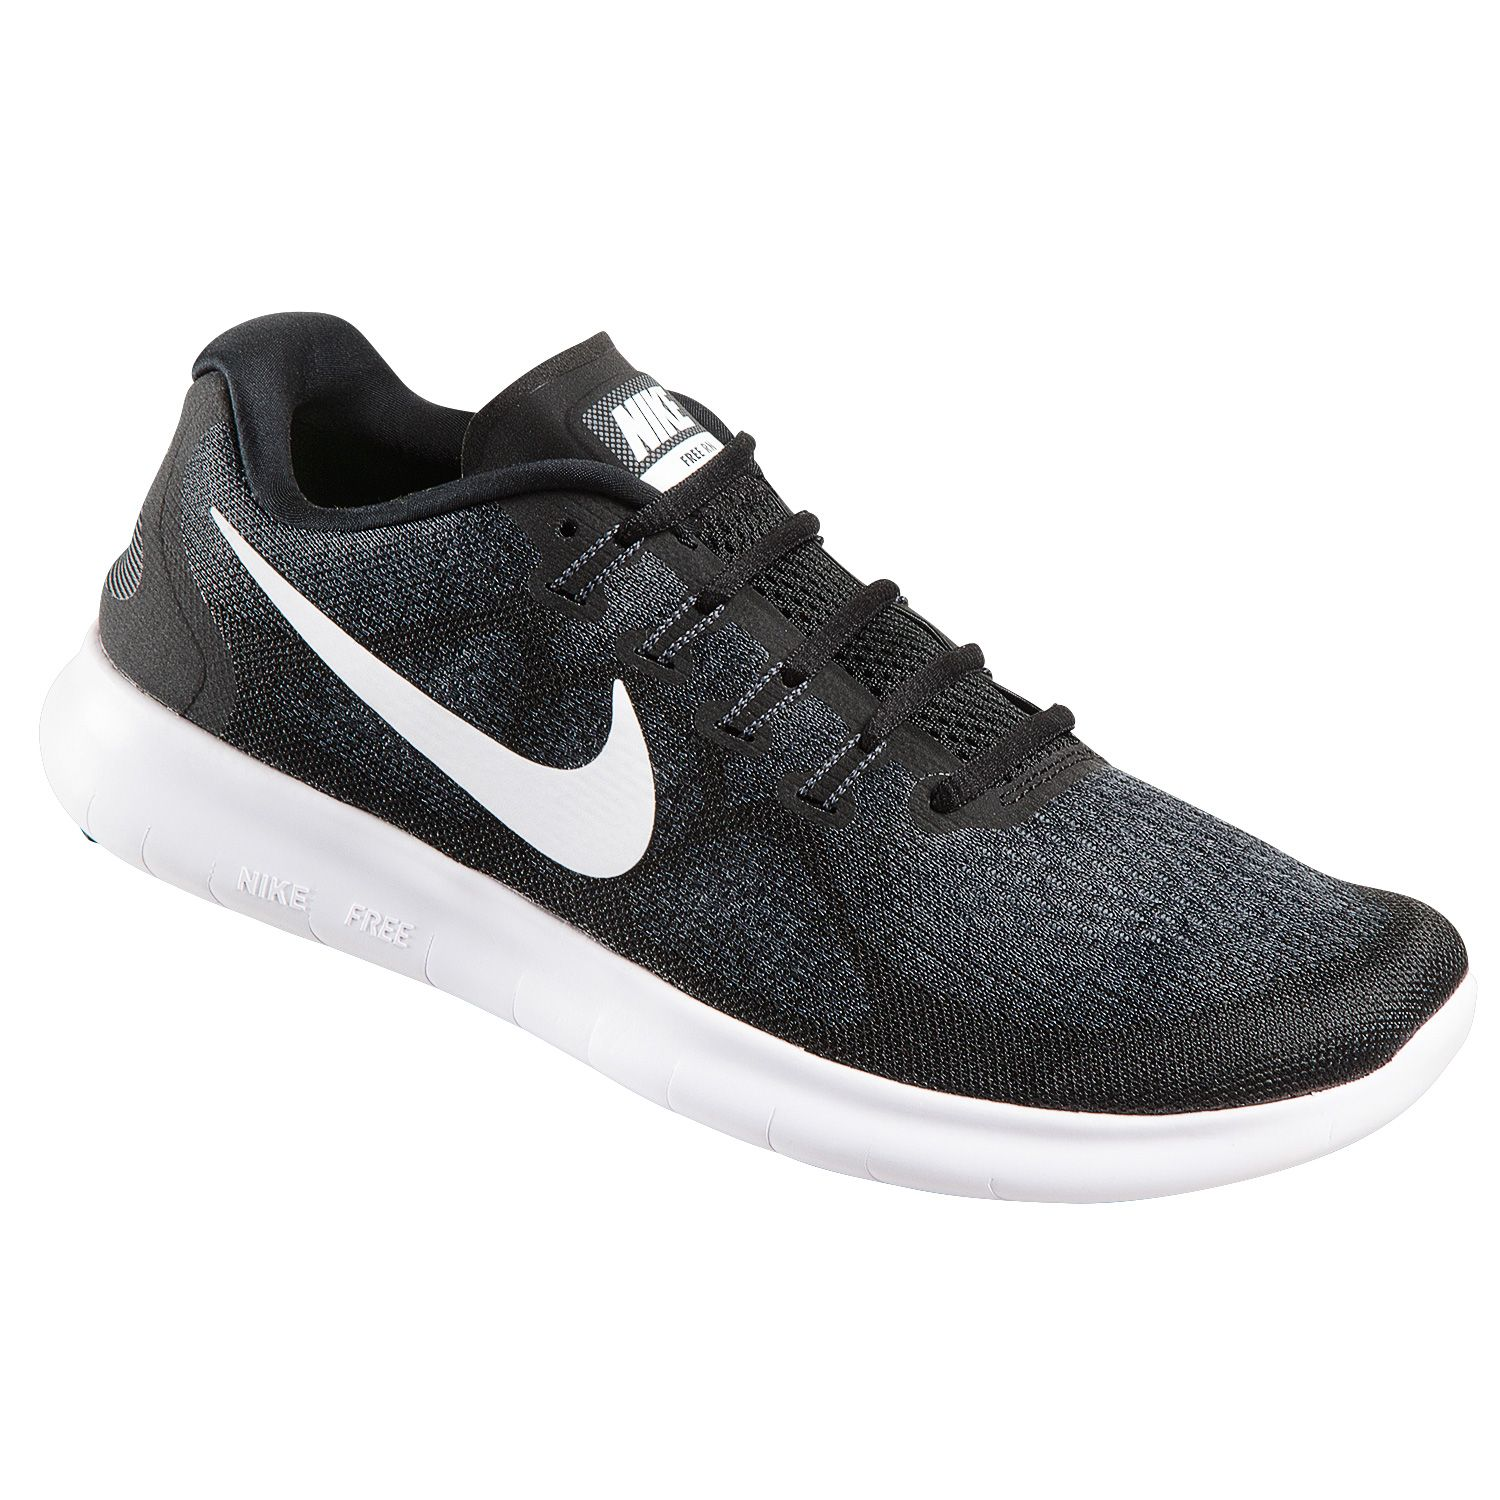 Details about Nike Flex RN Men`s Running Trainers Shoes Black 830369 001